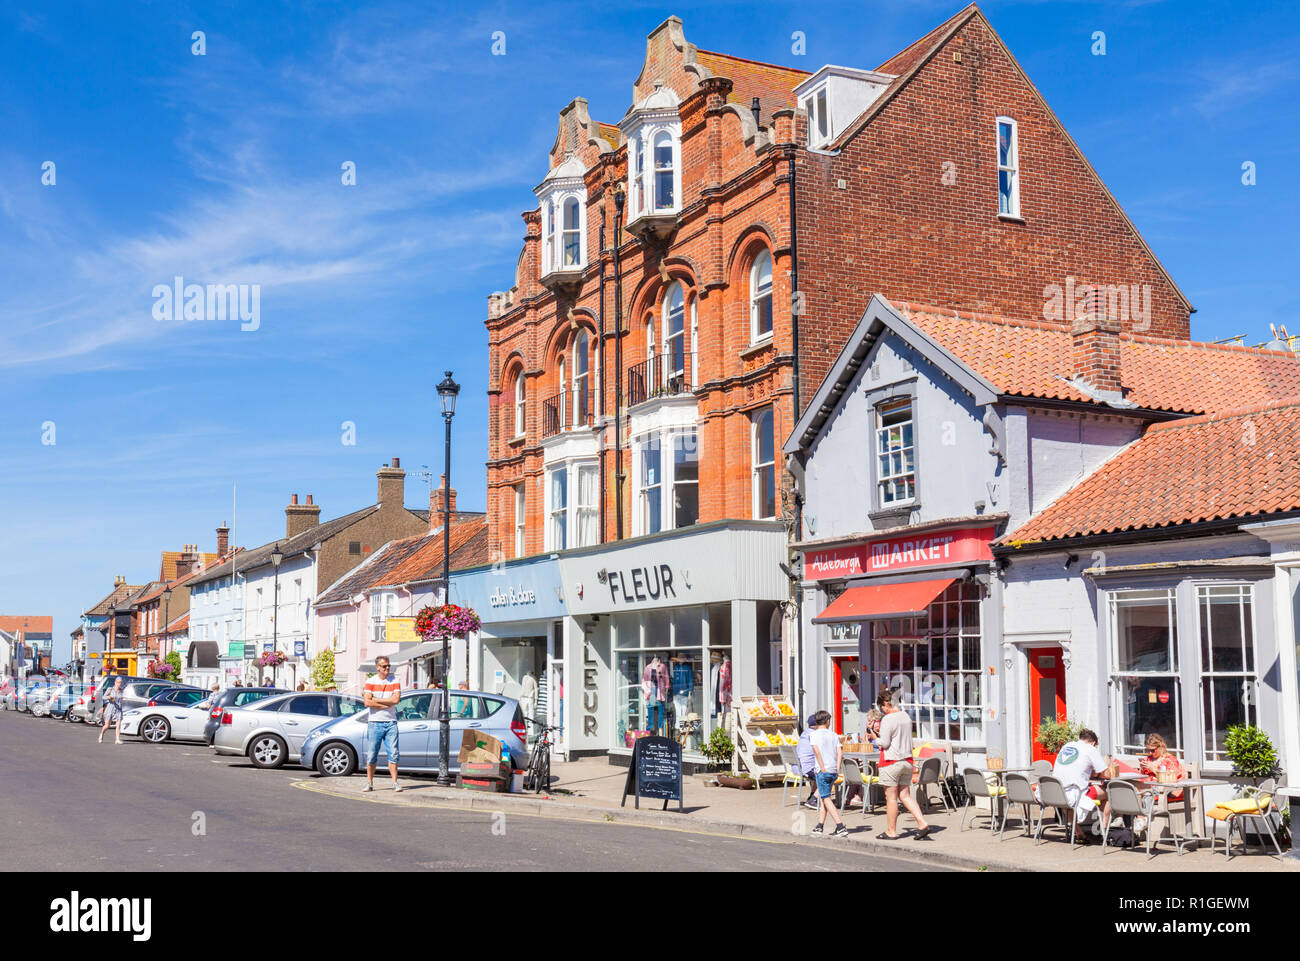 Aldeburgh Suffolk Aldeburgh High street with people browsing many shops and cafes Aldeburgh Suffolk England UK GB Europe - Stock Image